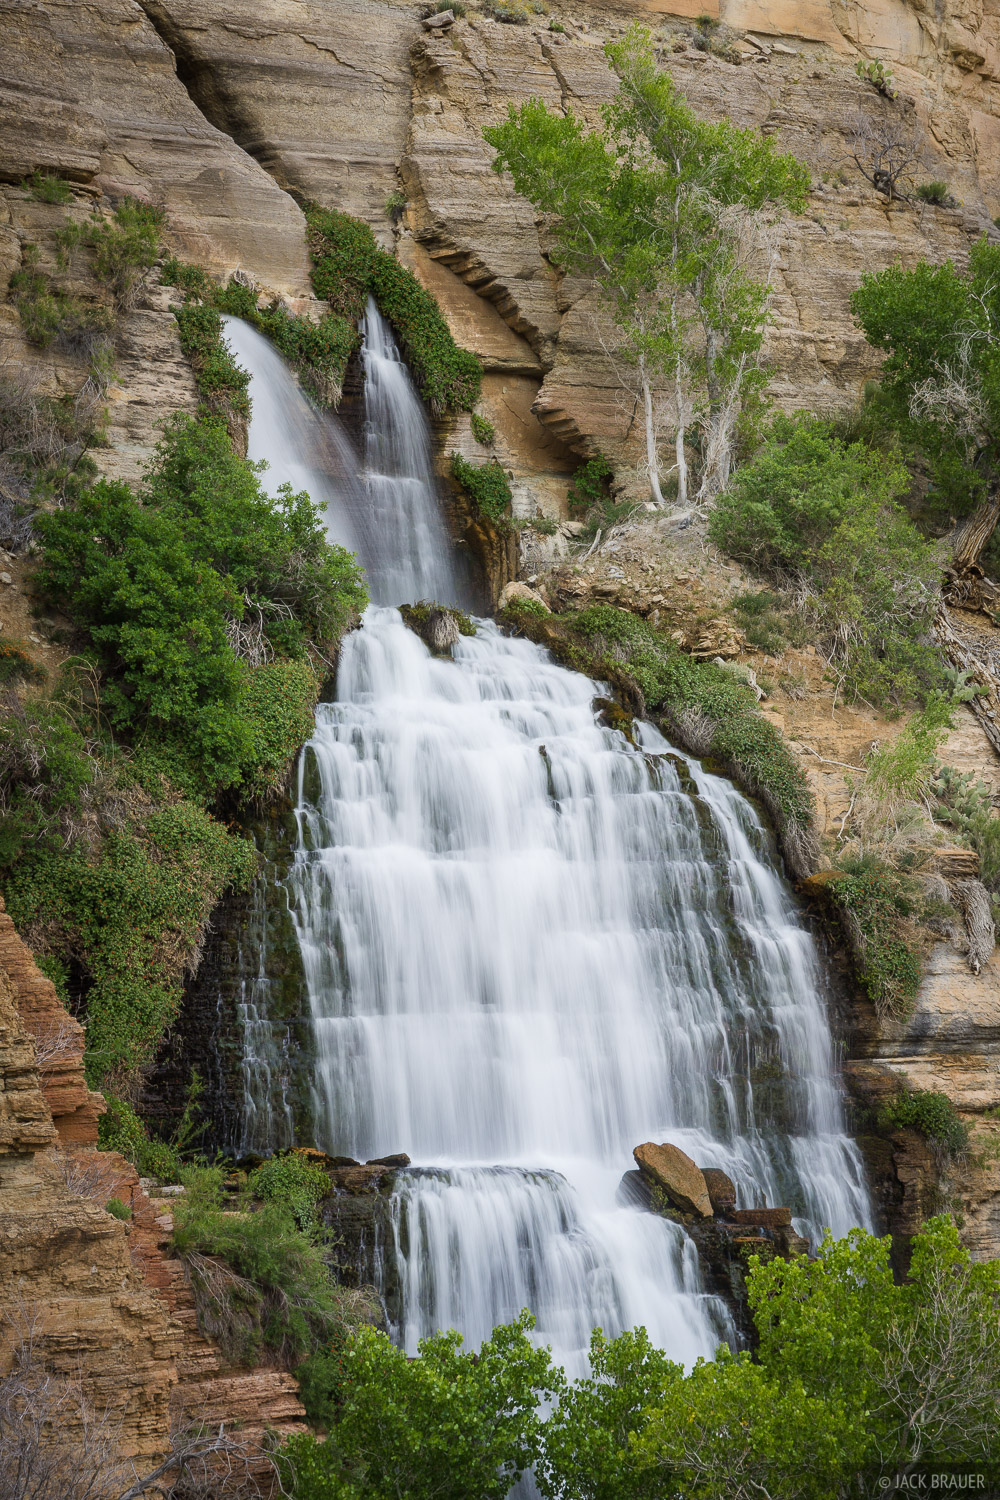 Arizona,Grand Canyon,waterfall, Thunder Spring, photo